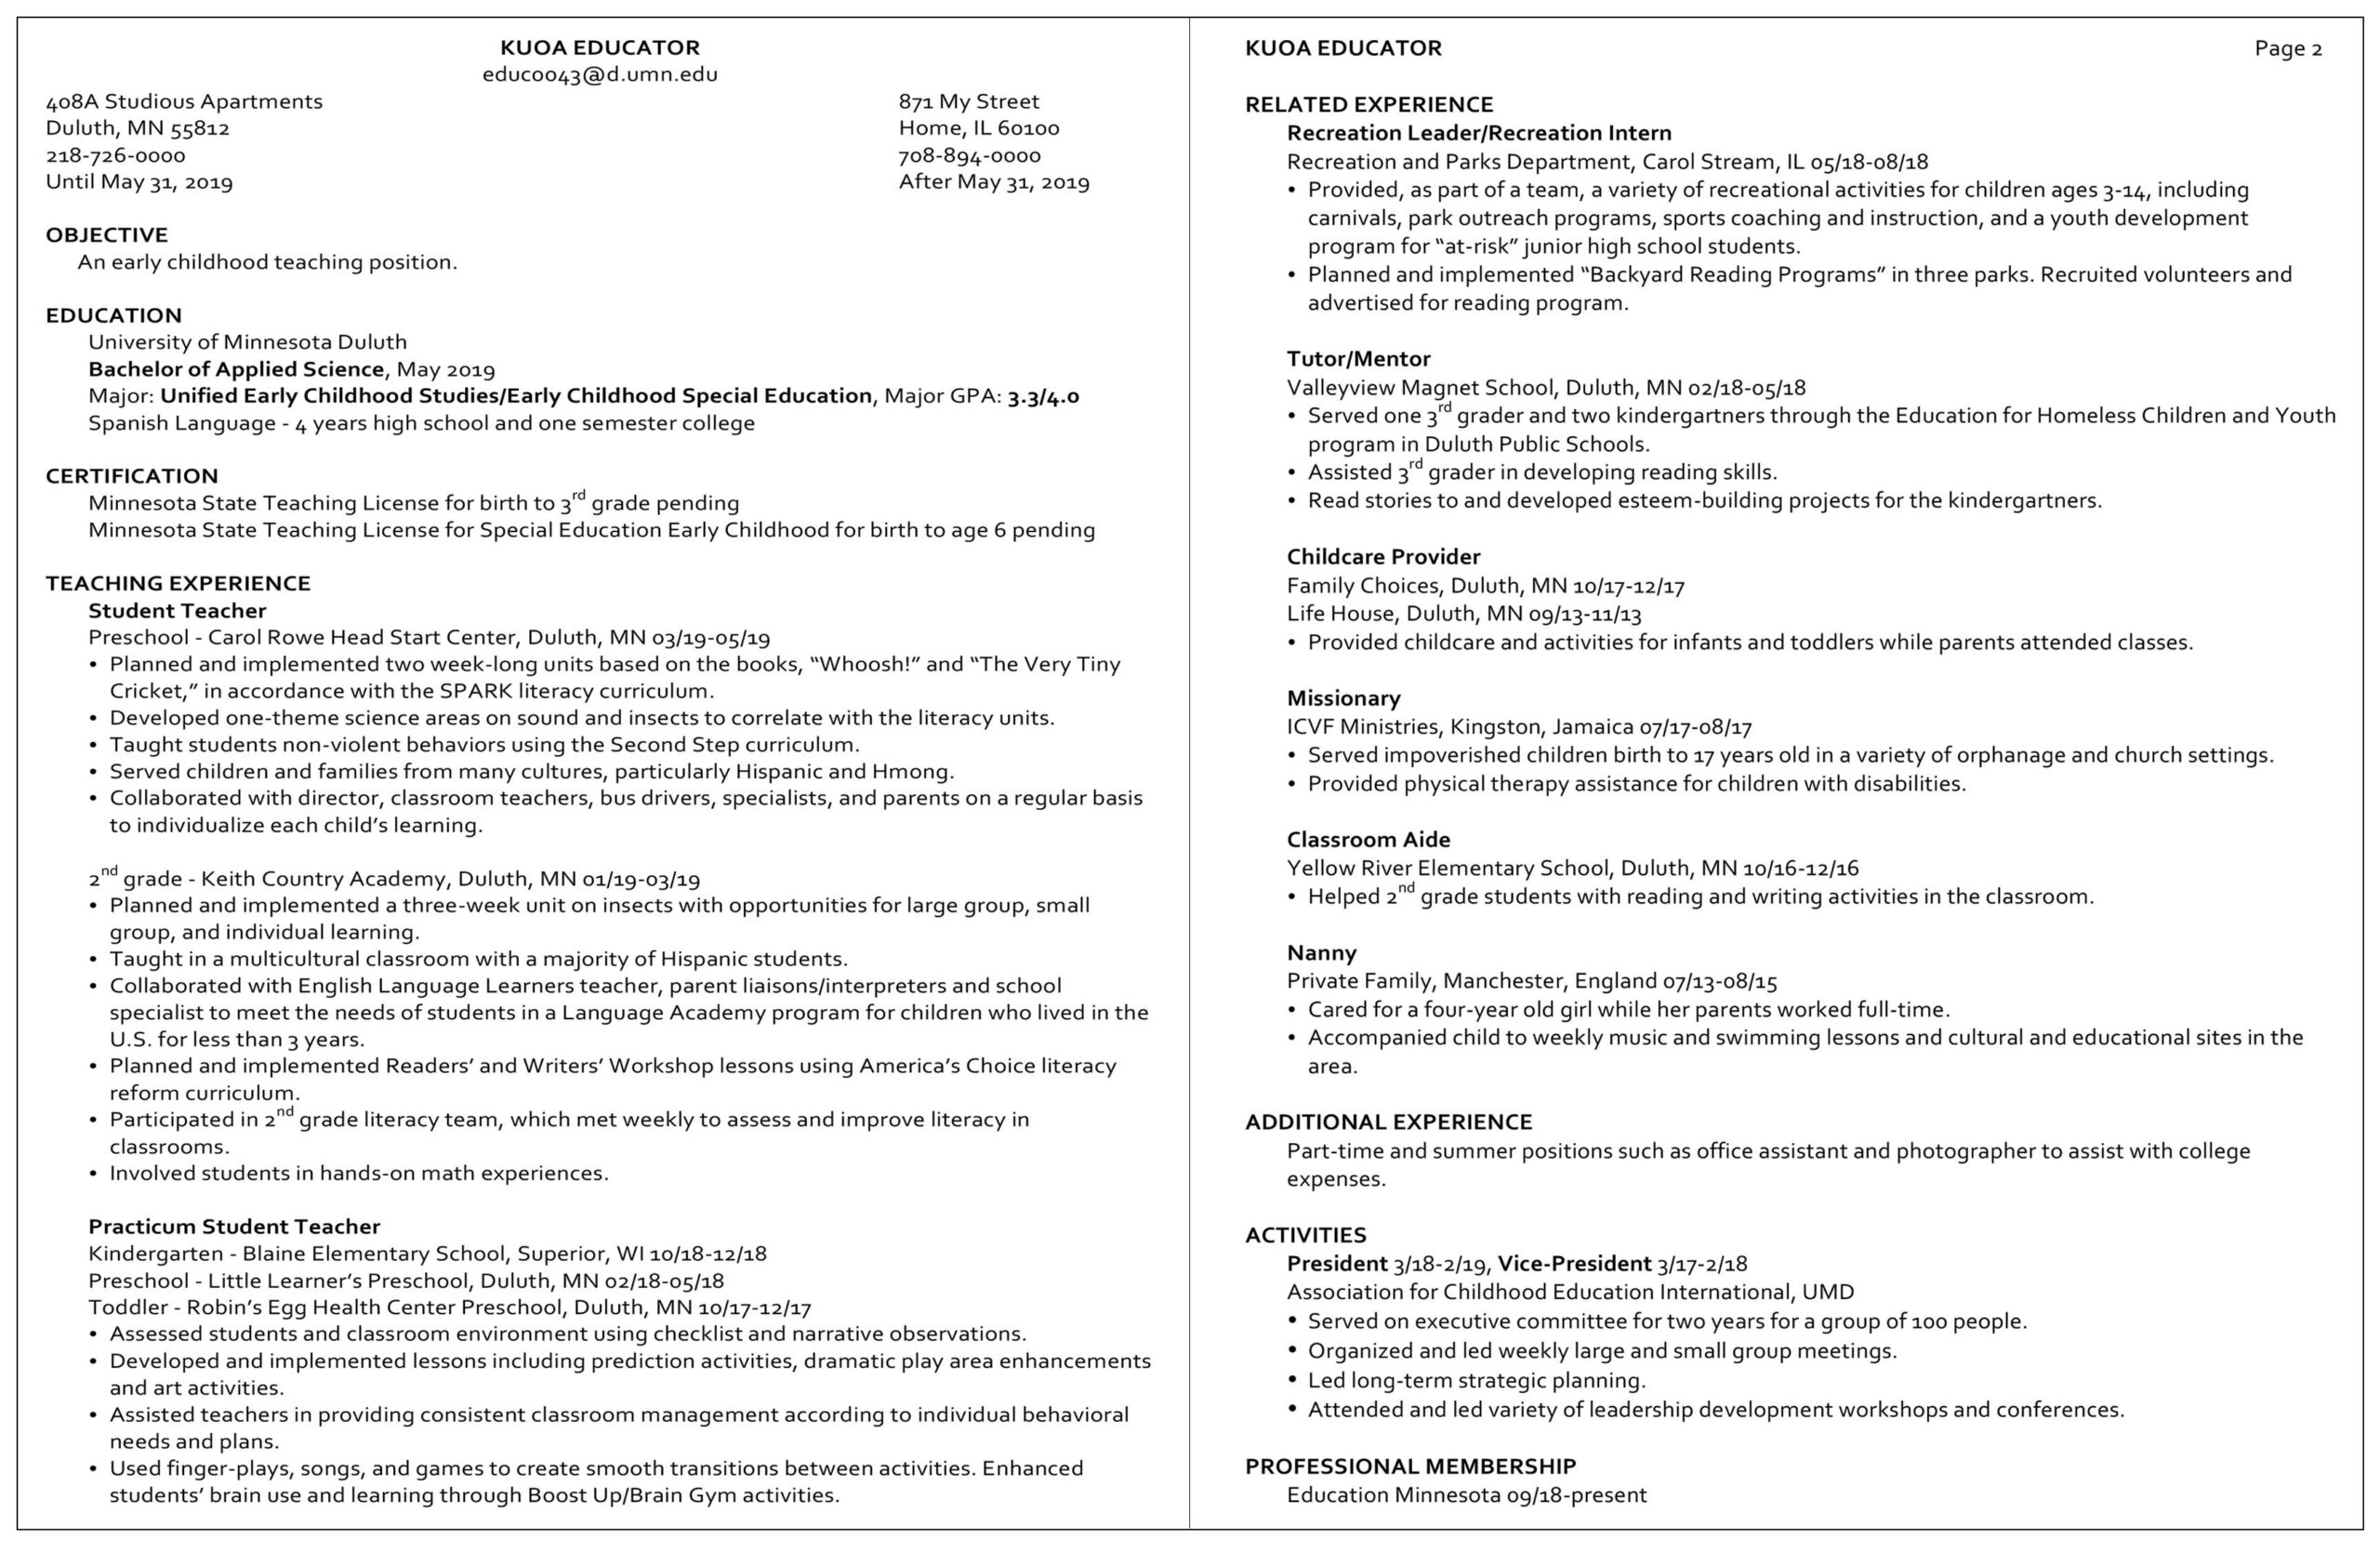 resume examples career internship services umn duluth sample high school for kuoa Resume Sample High School Resume For Internship